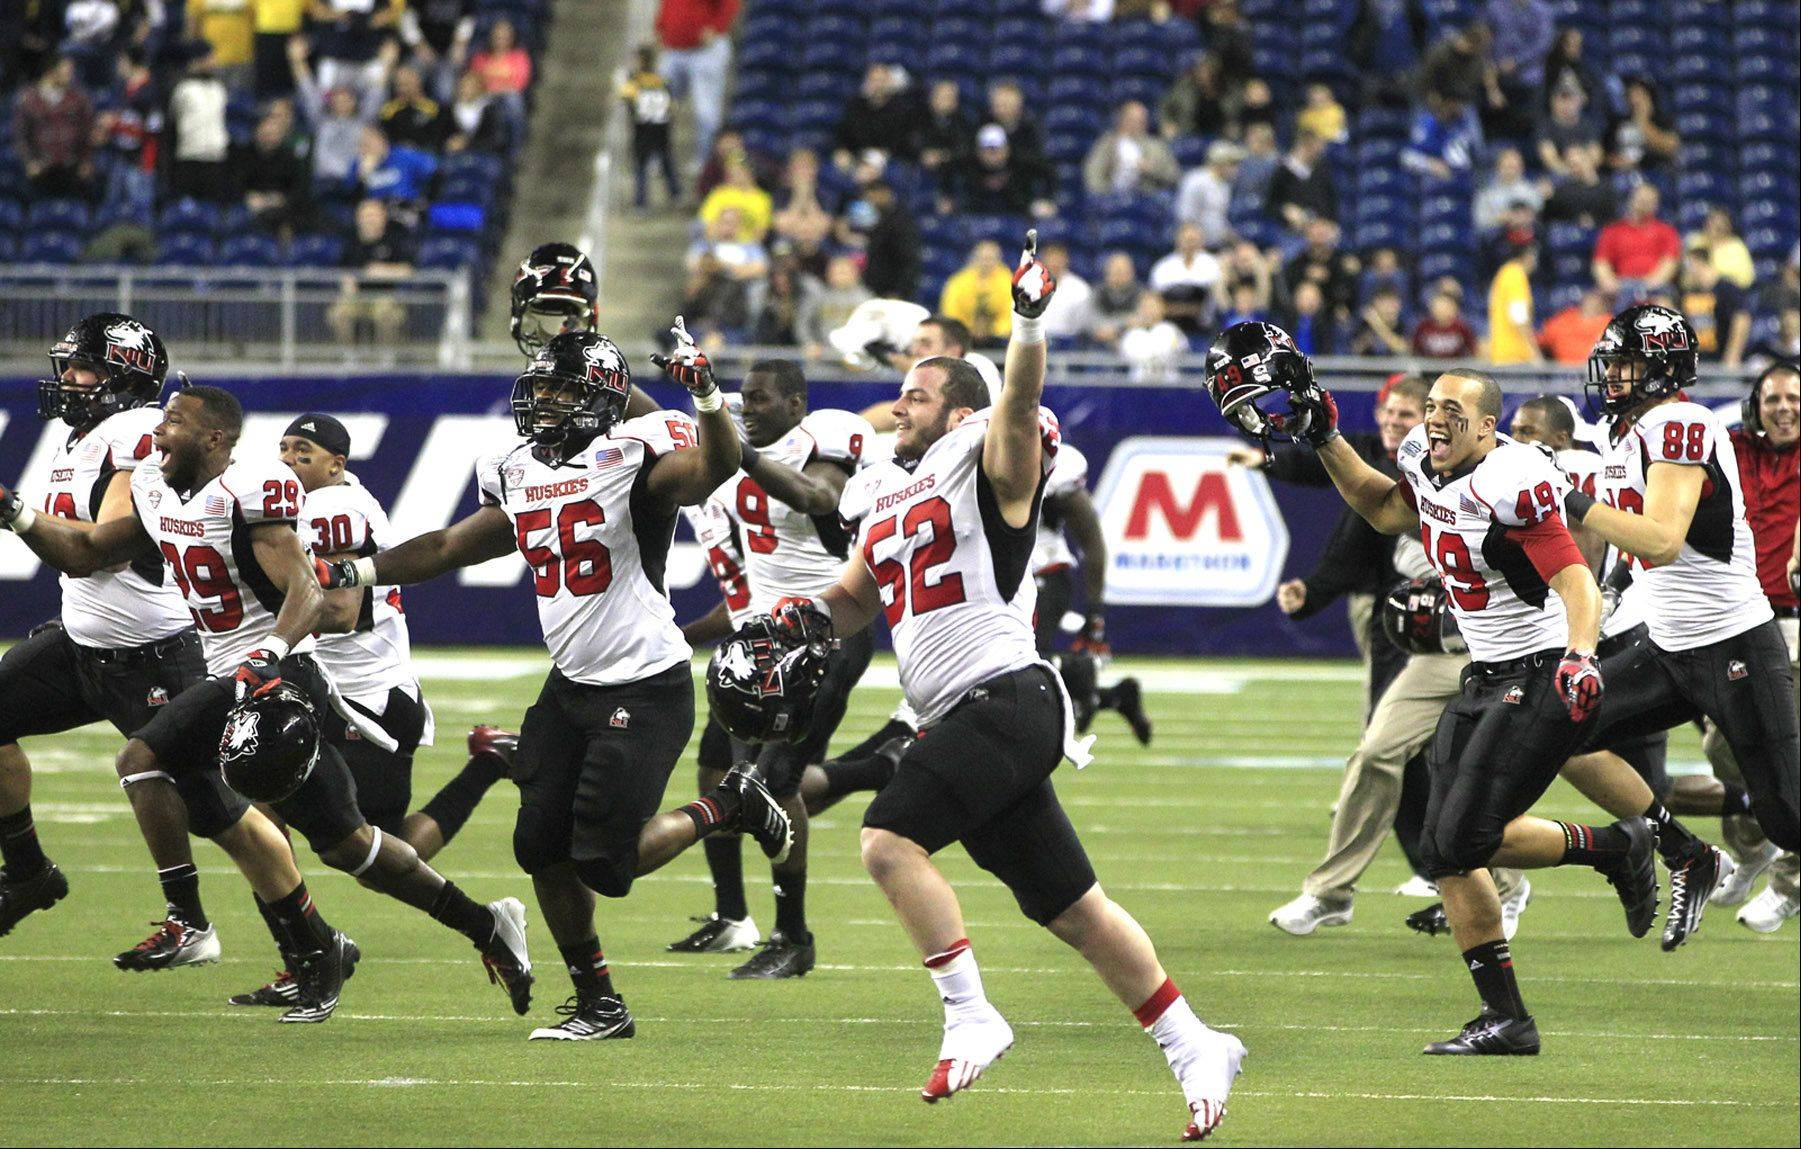 Since the Northern Illinois Huskies celebrated their MAC title win over Kent State, enrollment requests are up 33 percent at the university. NIU (12-1) will play Florida State in the Orange Bowl on Jan. 1.